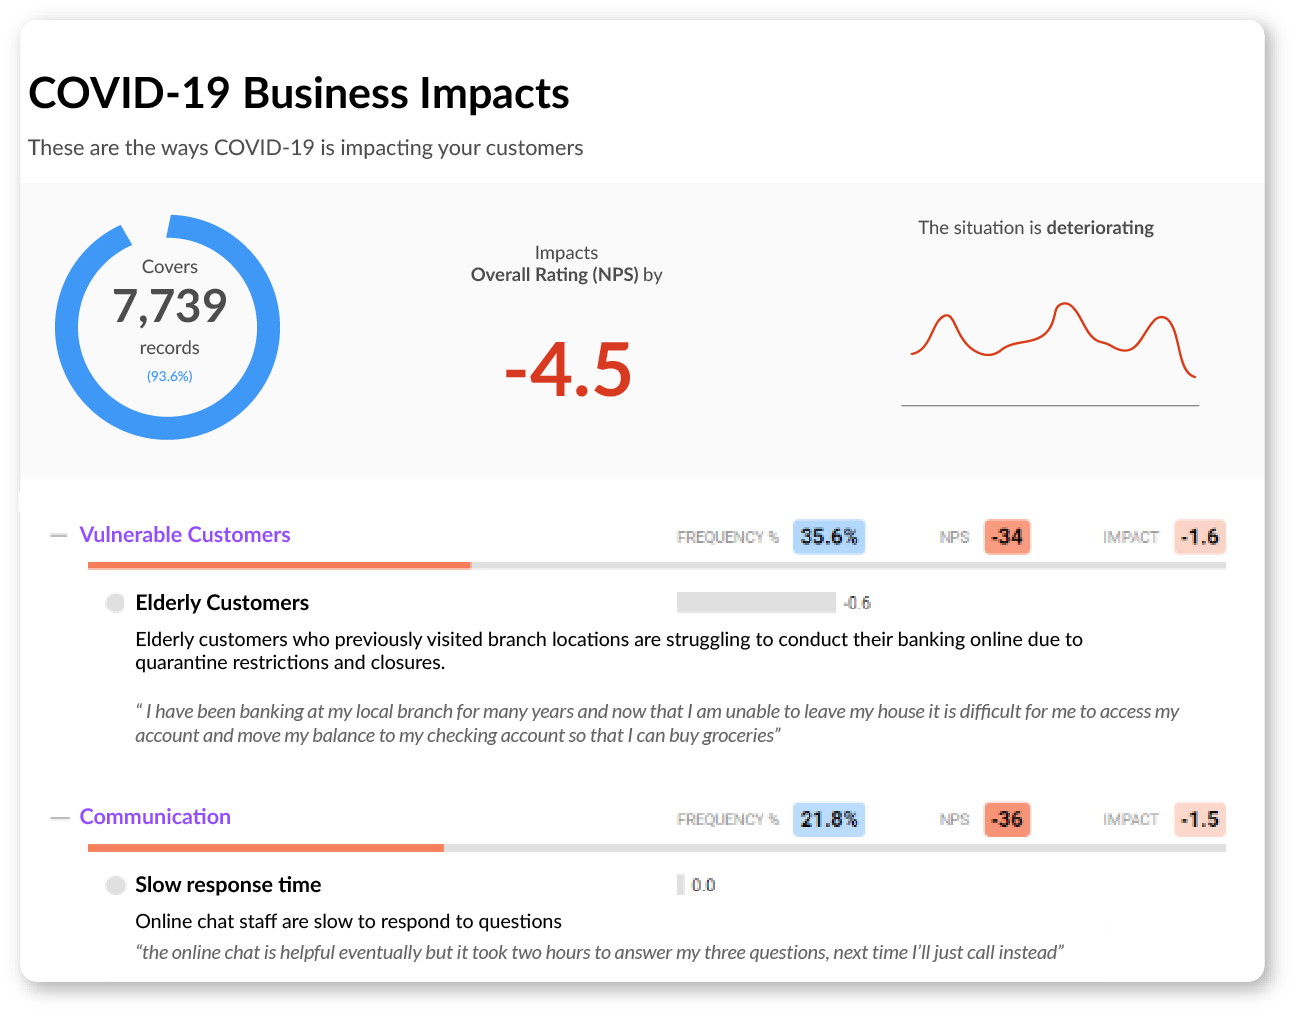 analyse the impact of covid-19 on your business